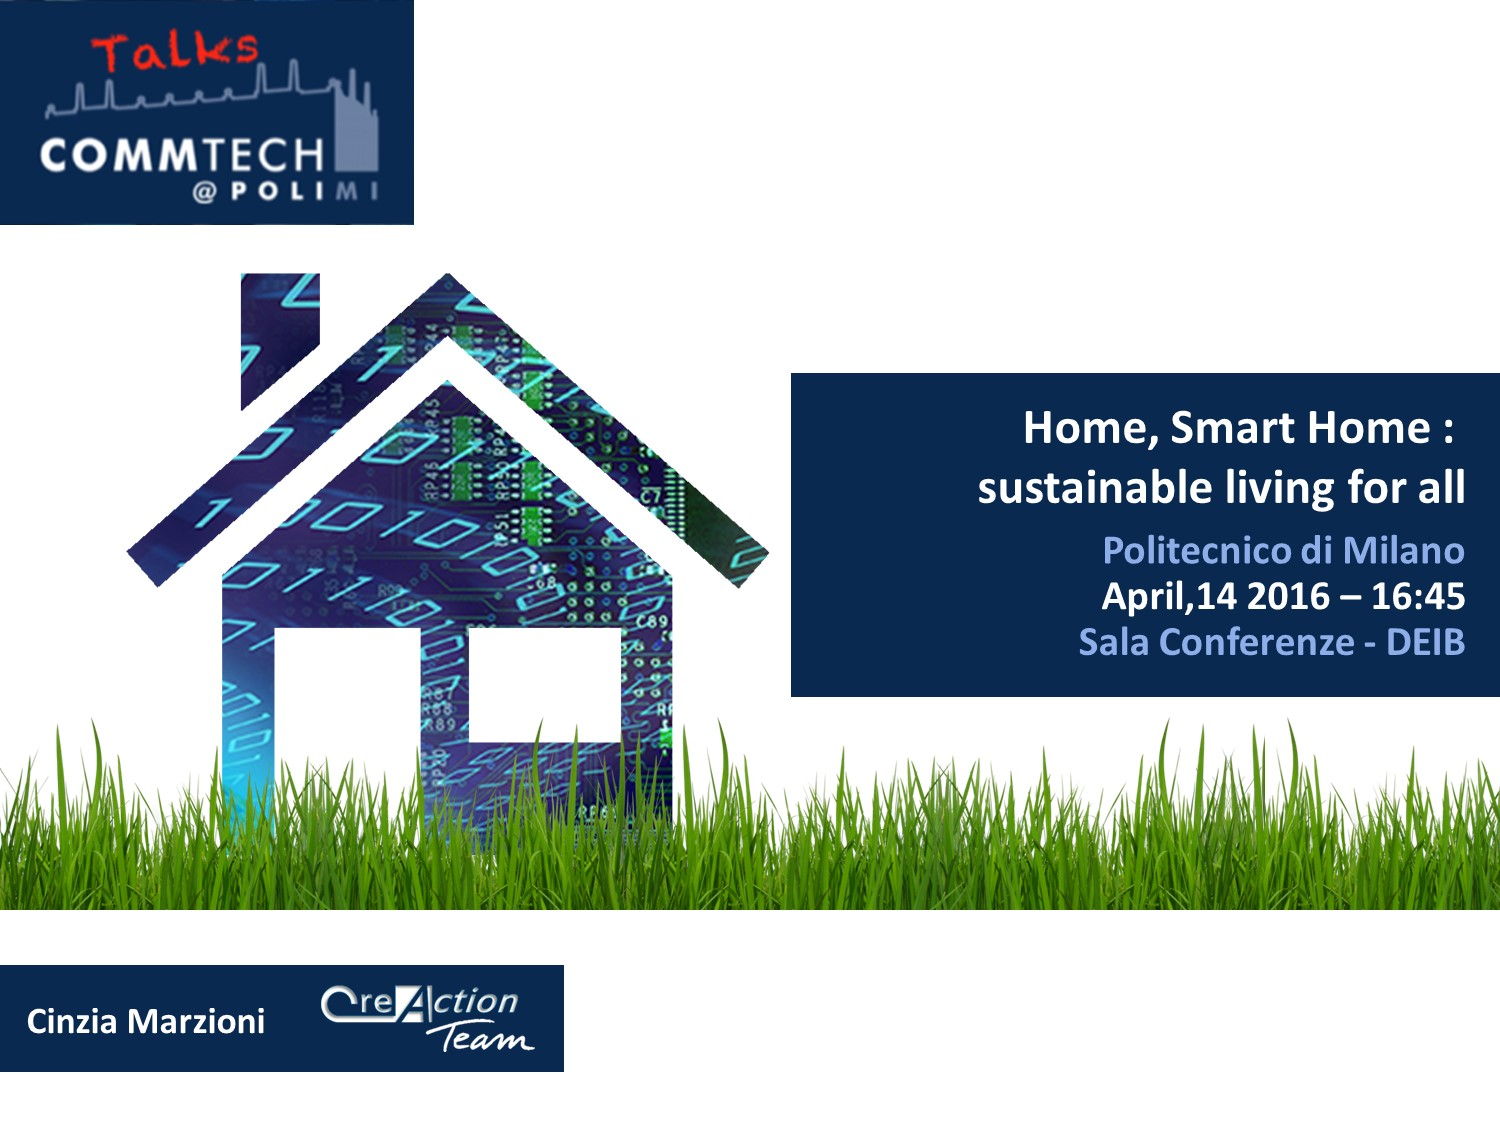 home, smart home: sustainable living